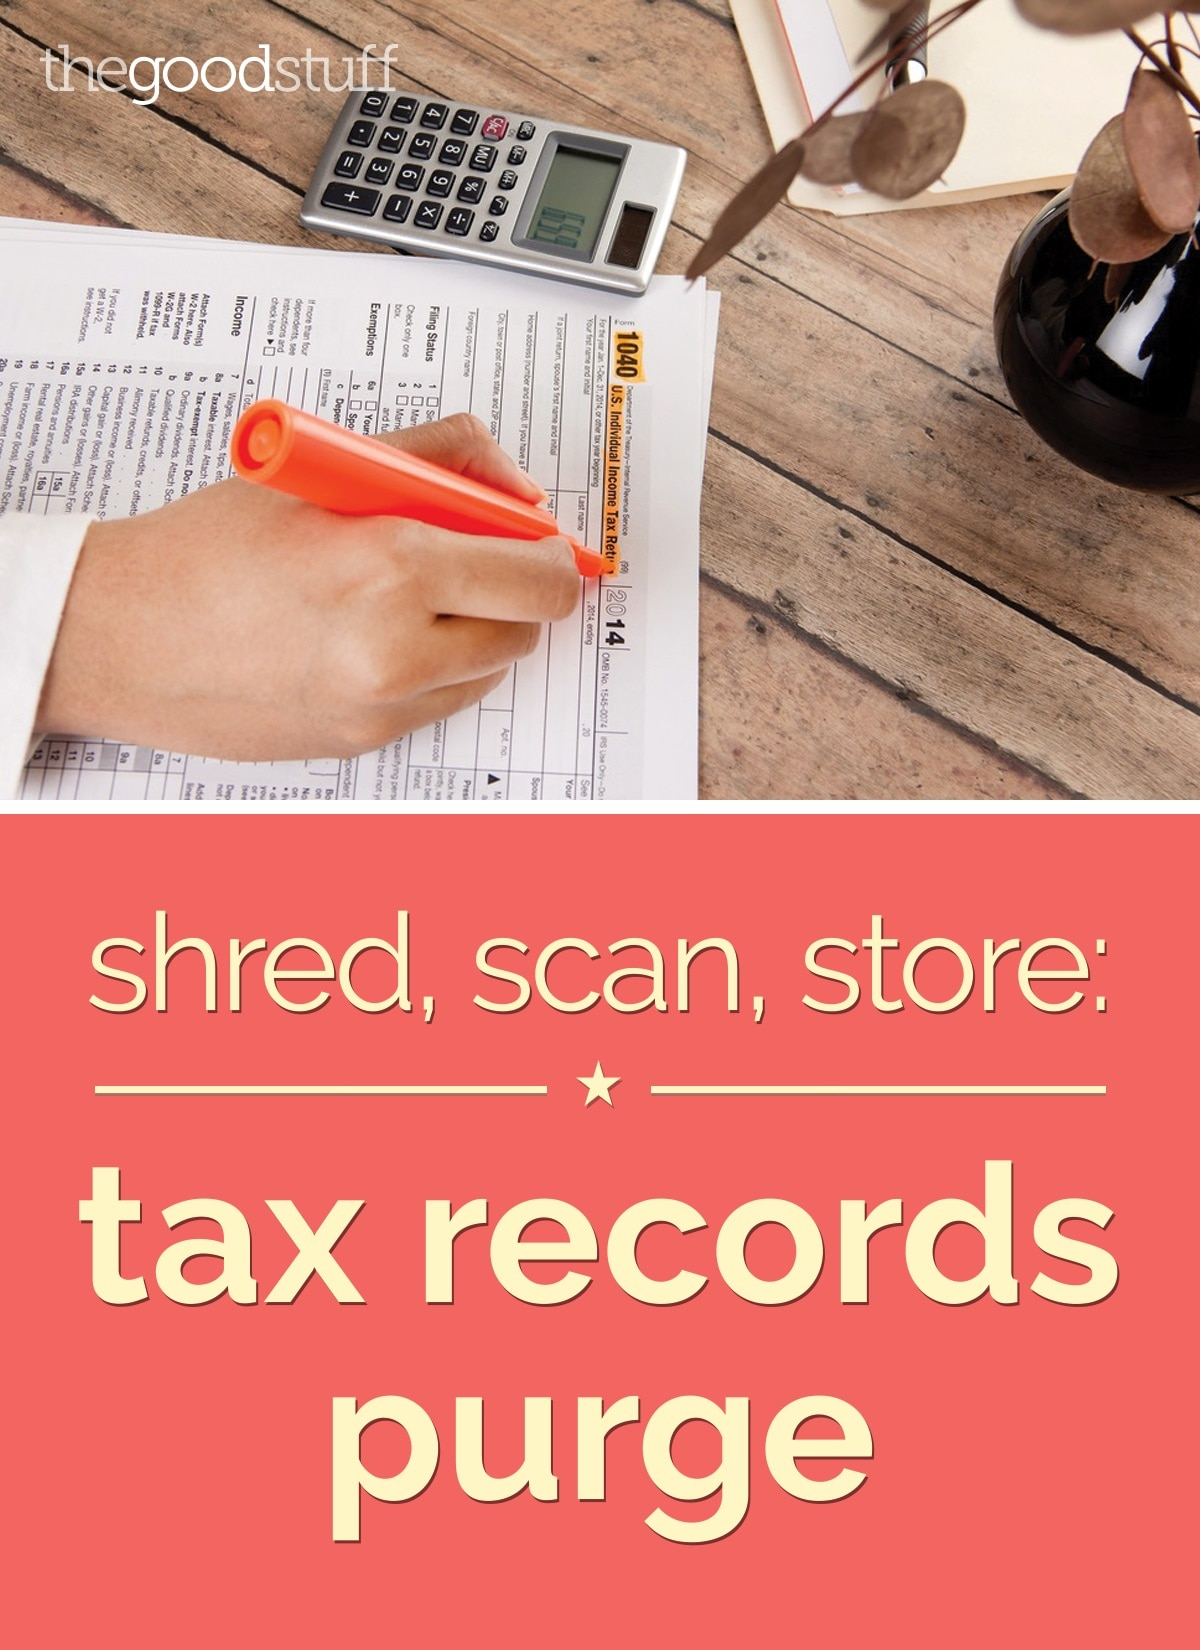 save-tax-records